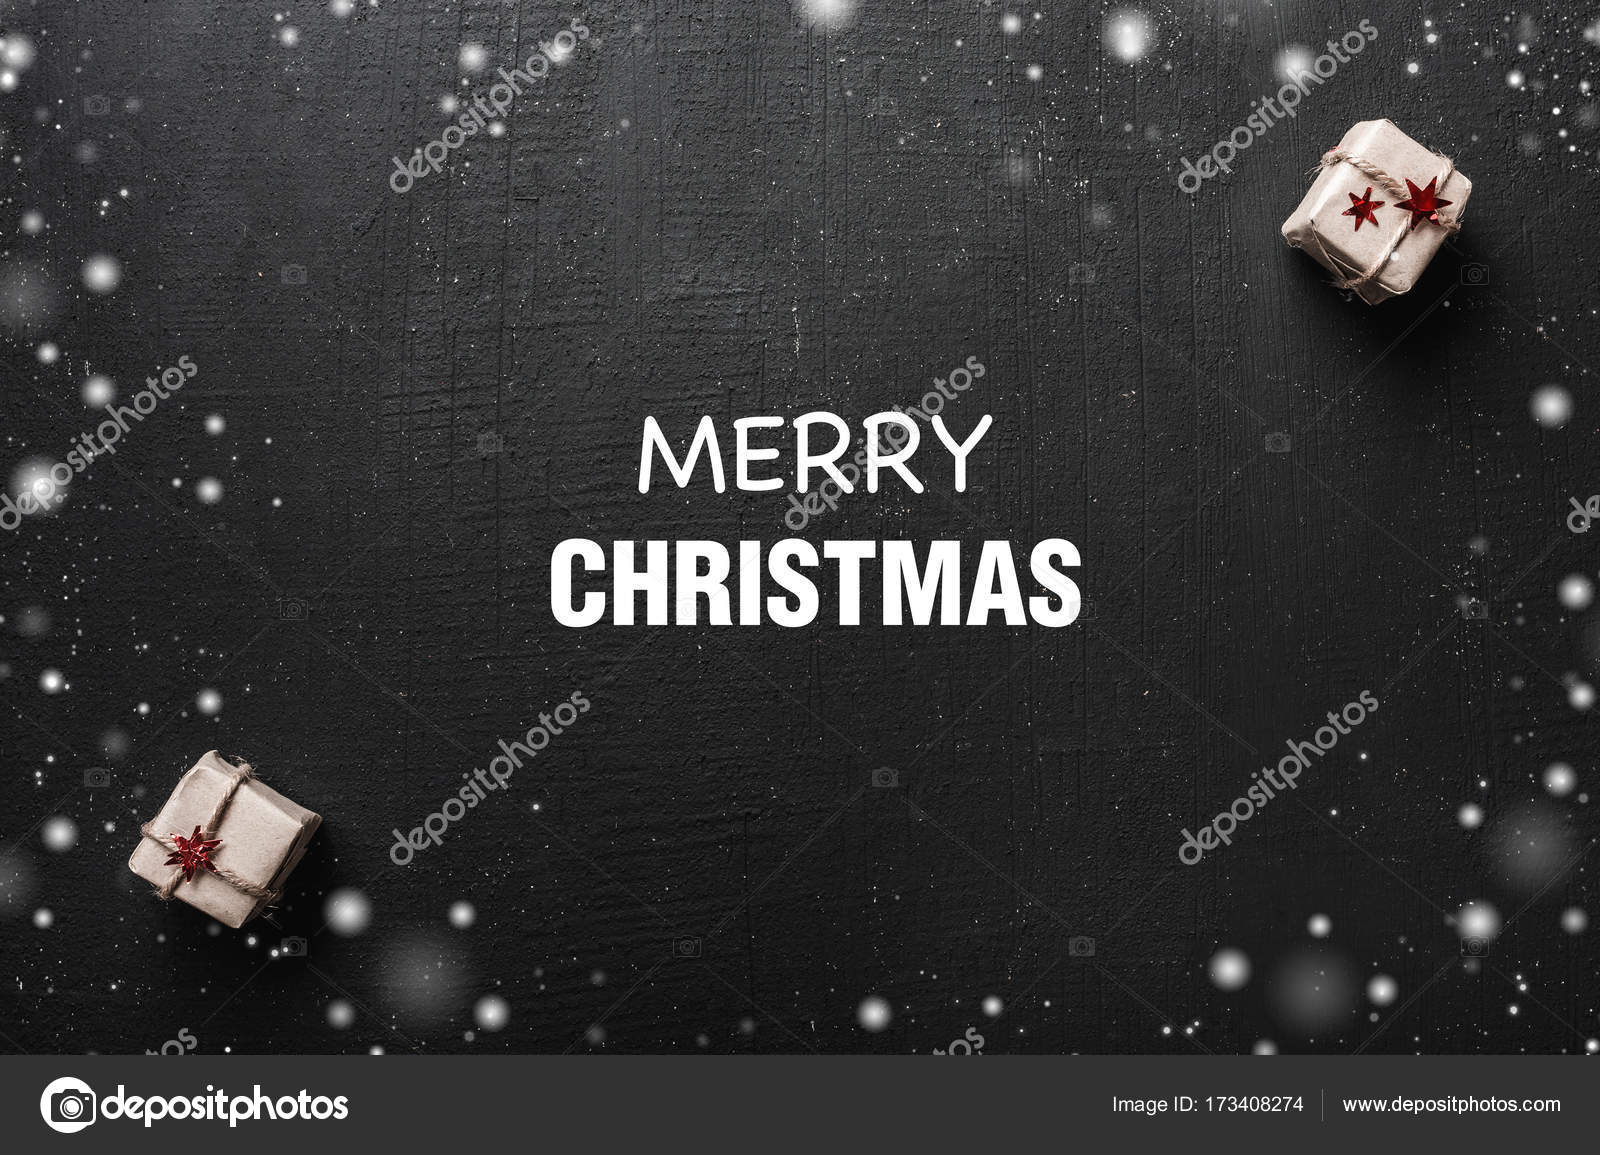 Christmas Card With Space For A Greeting Message For Loved Ones And